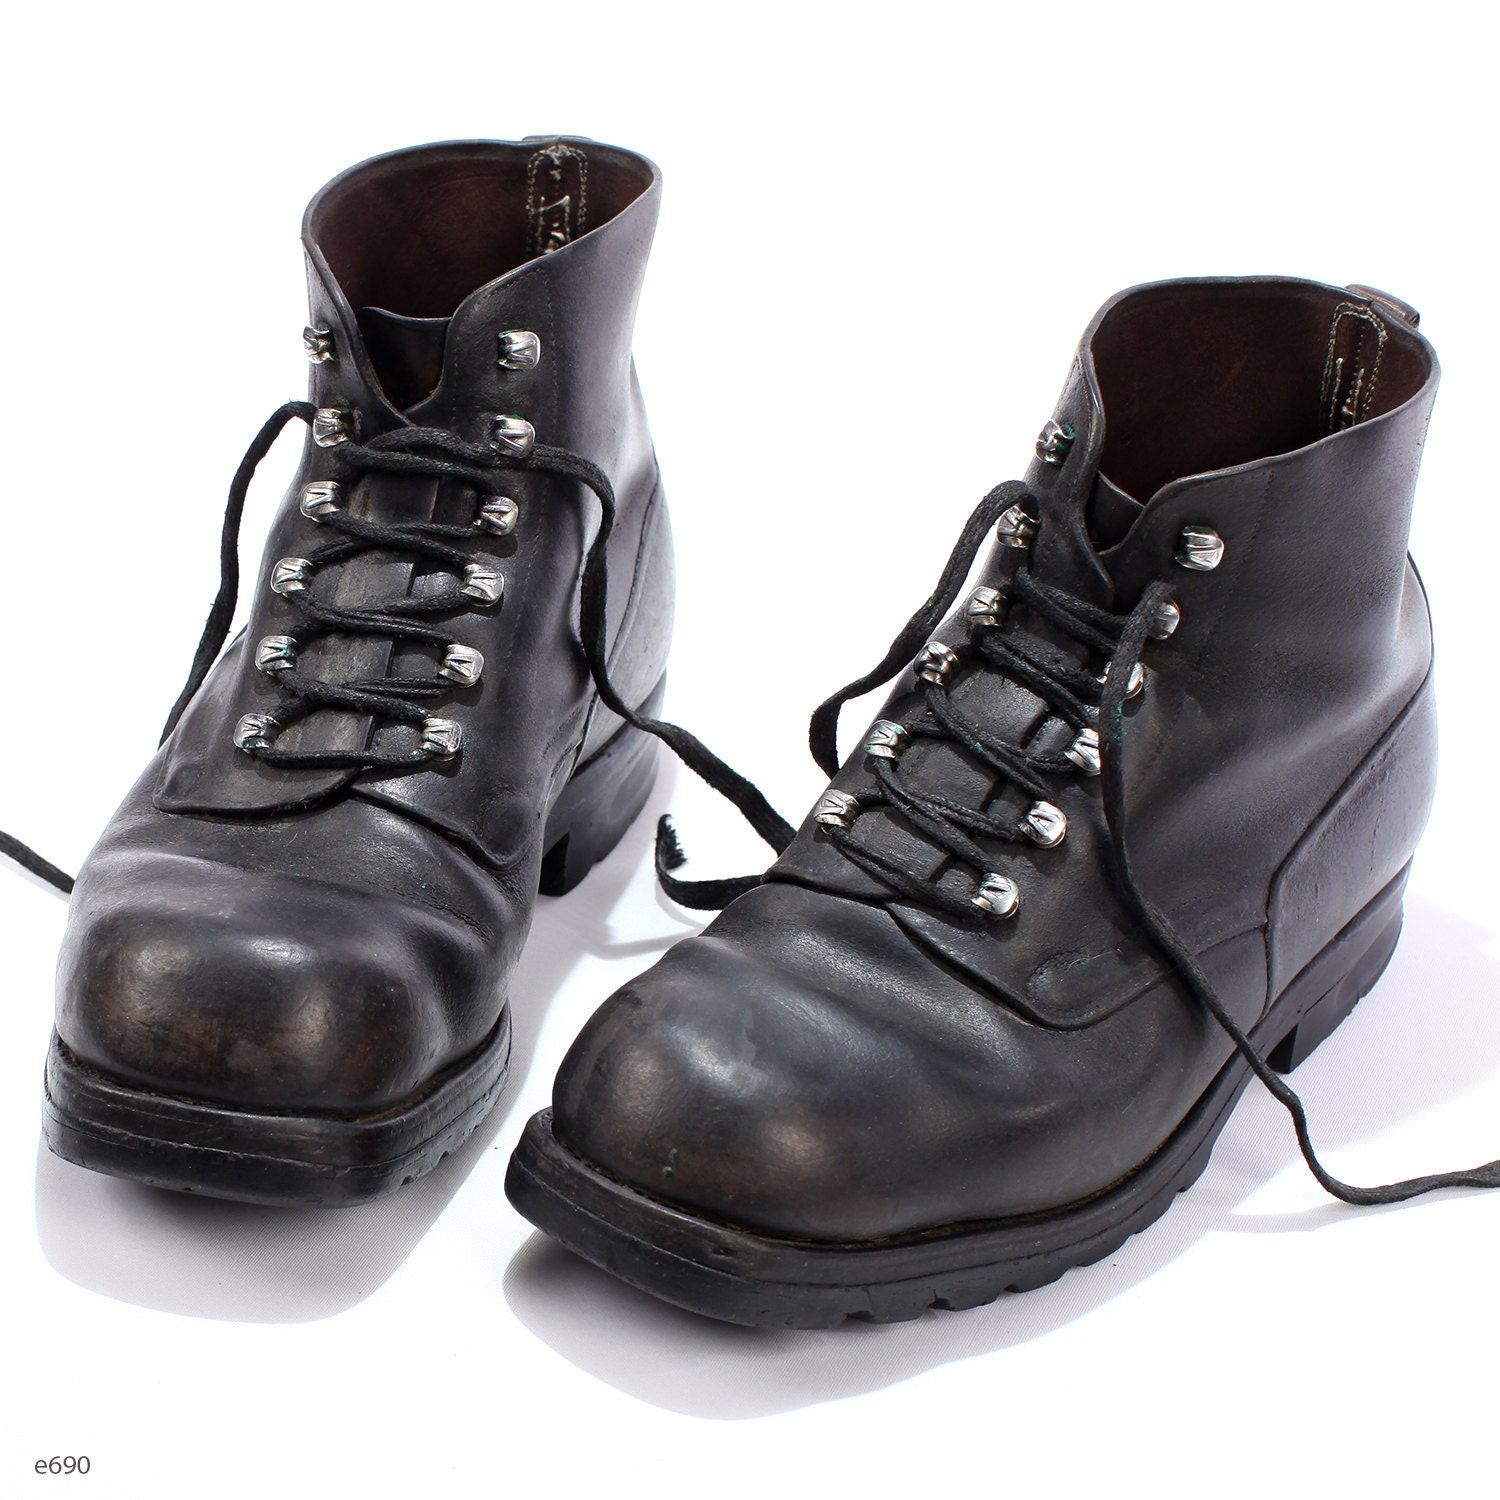 Creative Top 5 Black Combat Boots For Women 2014  Best Picks With Images